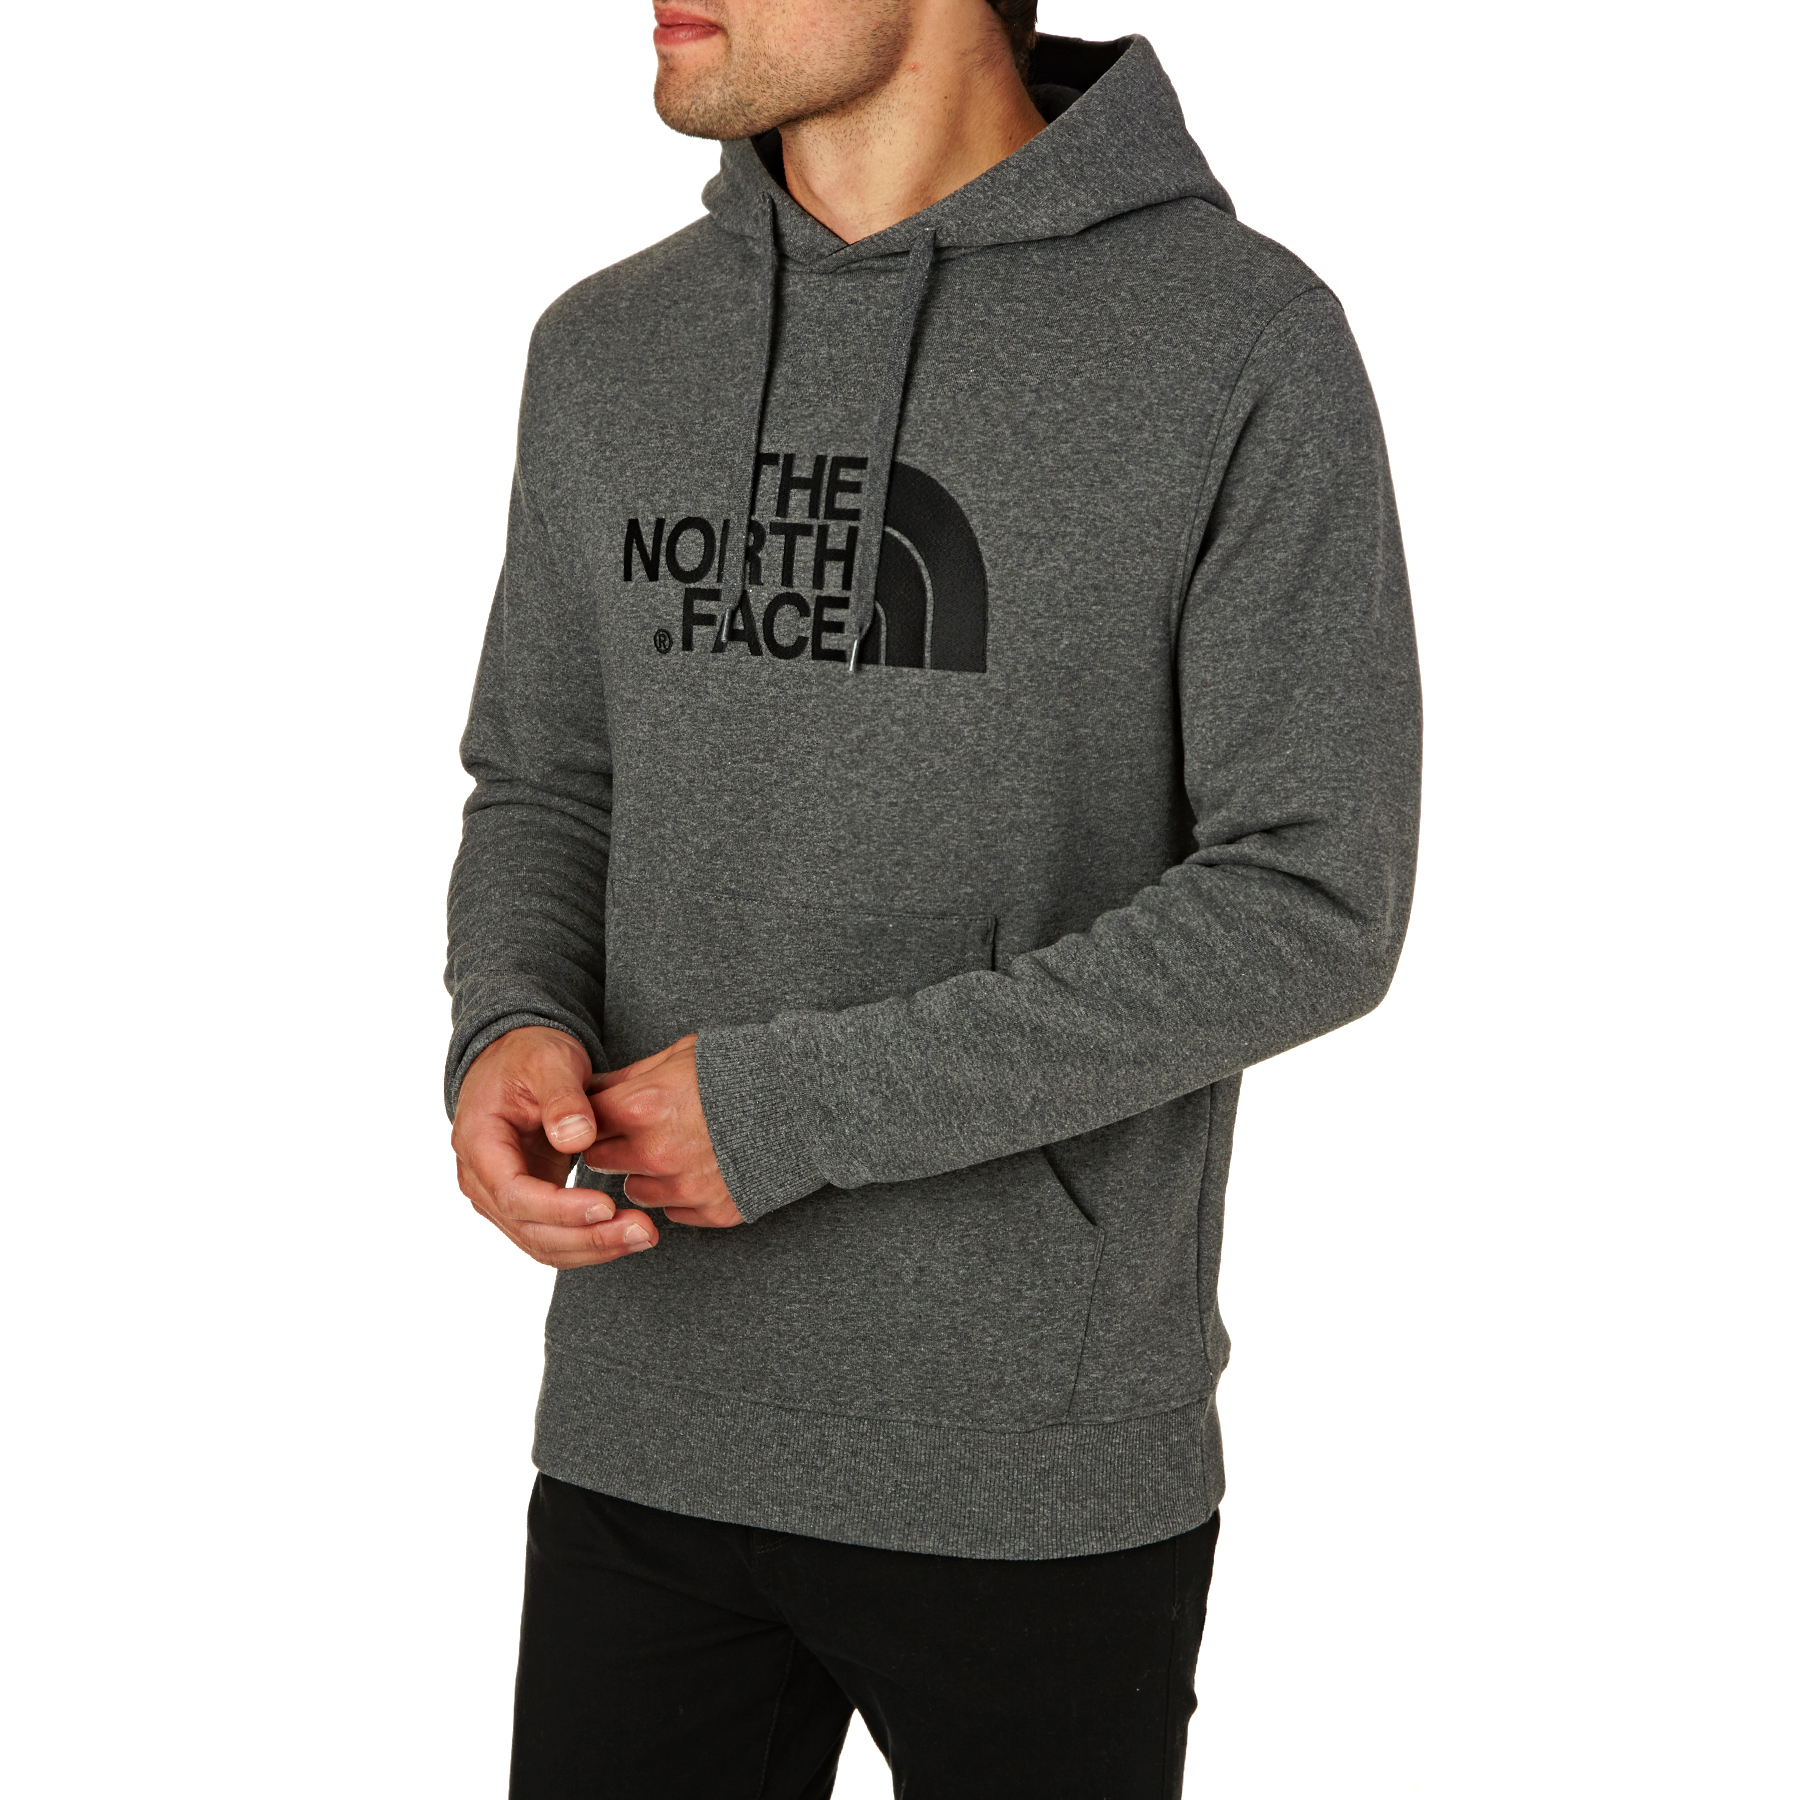 Volcom Lived In Long Zip Hoodie Charcoal Heather, 38,30 €